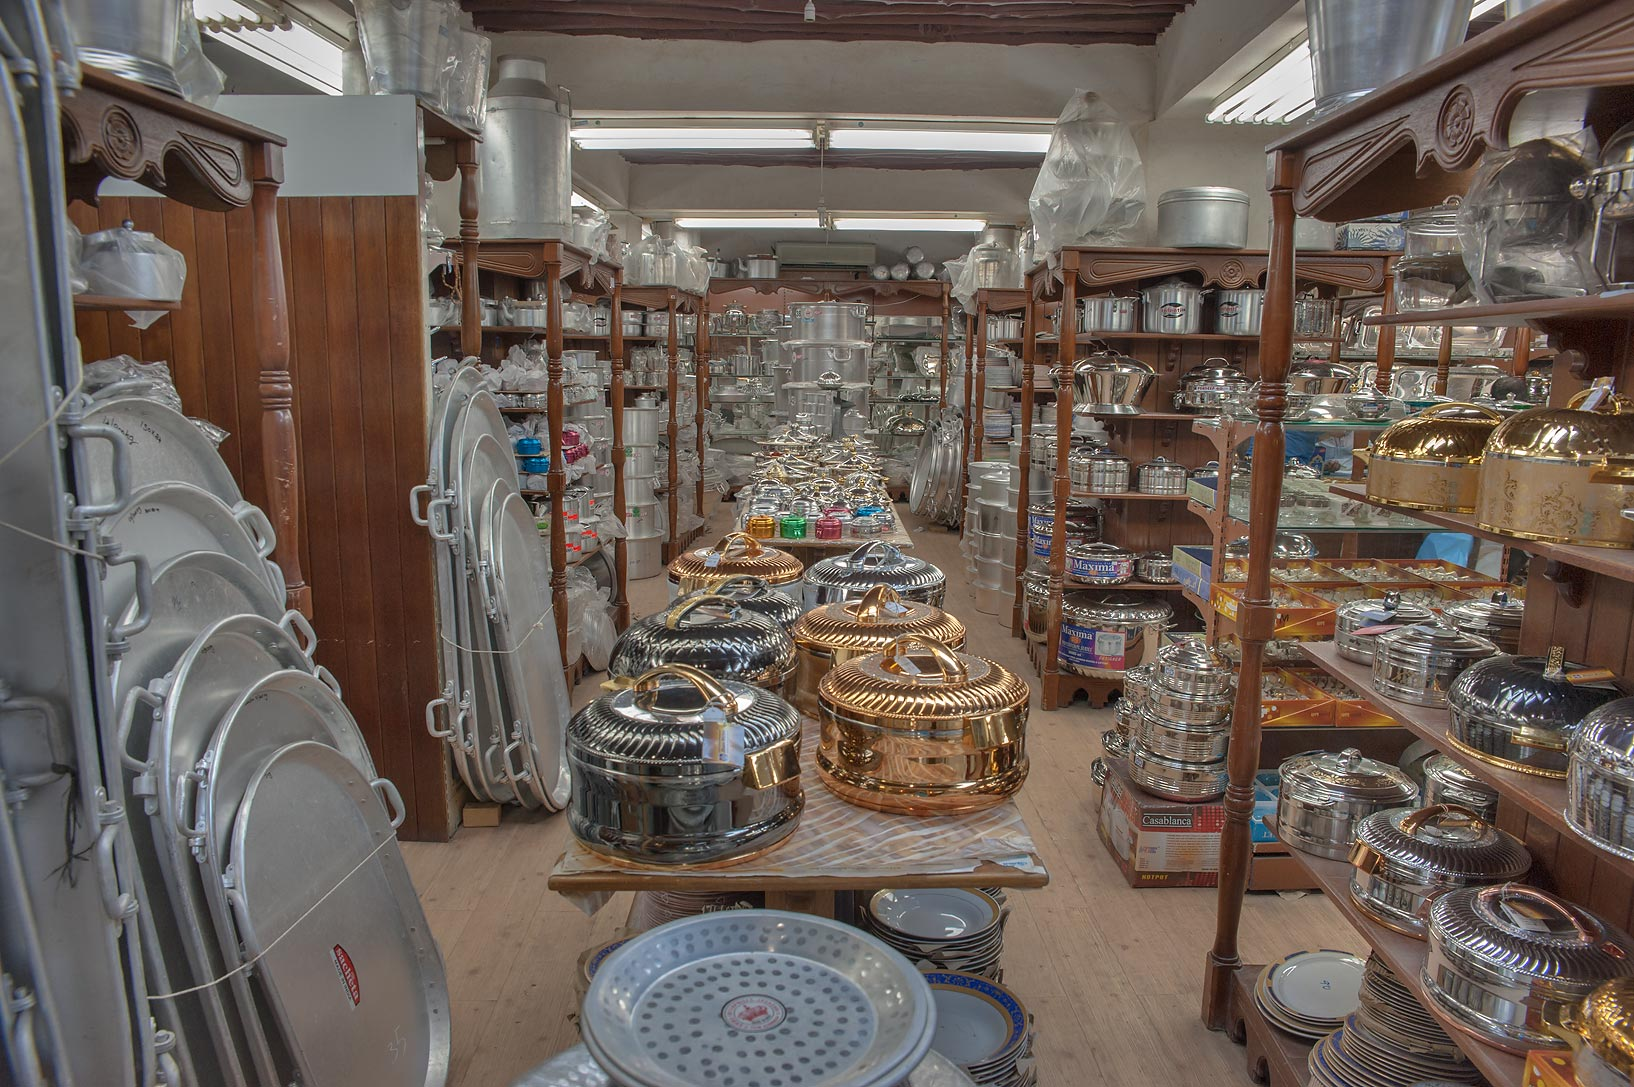 Kitchenware shop in Souq Waqif (old market). Doha, Qatar